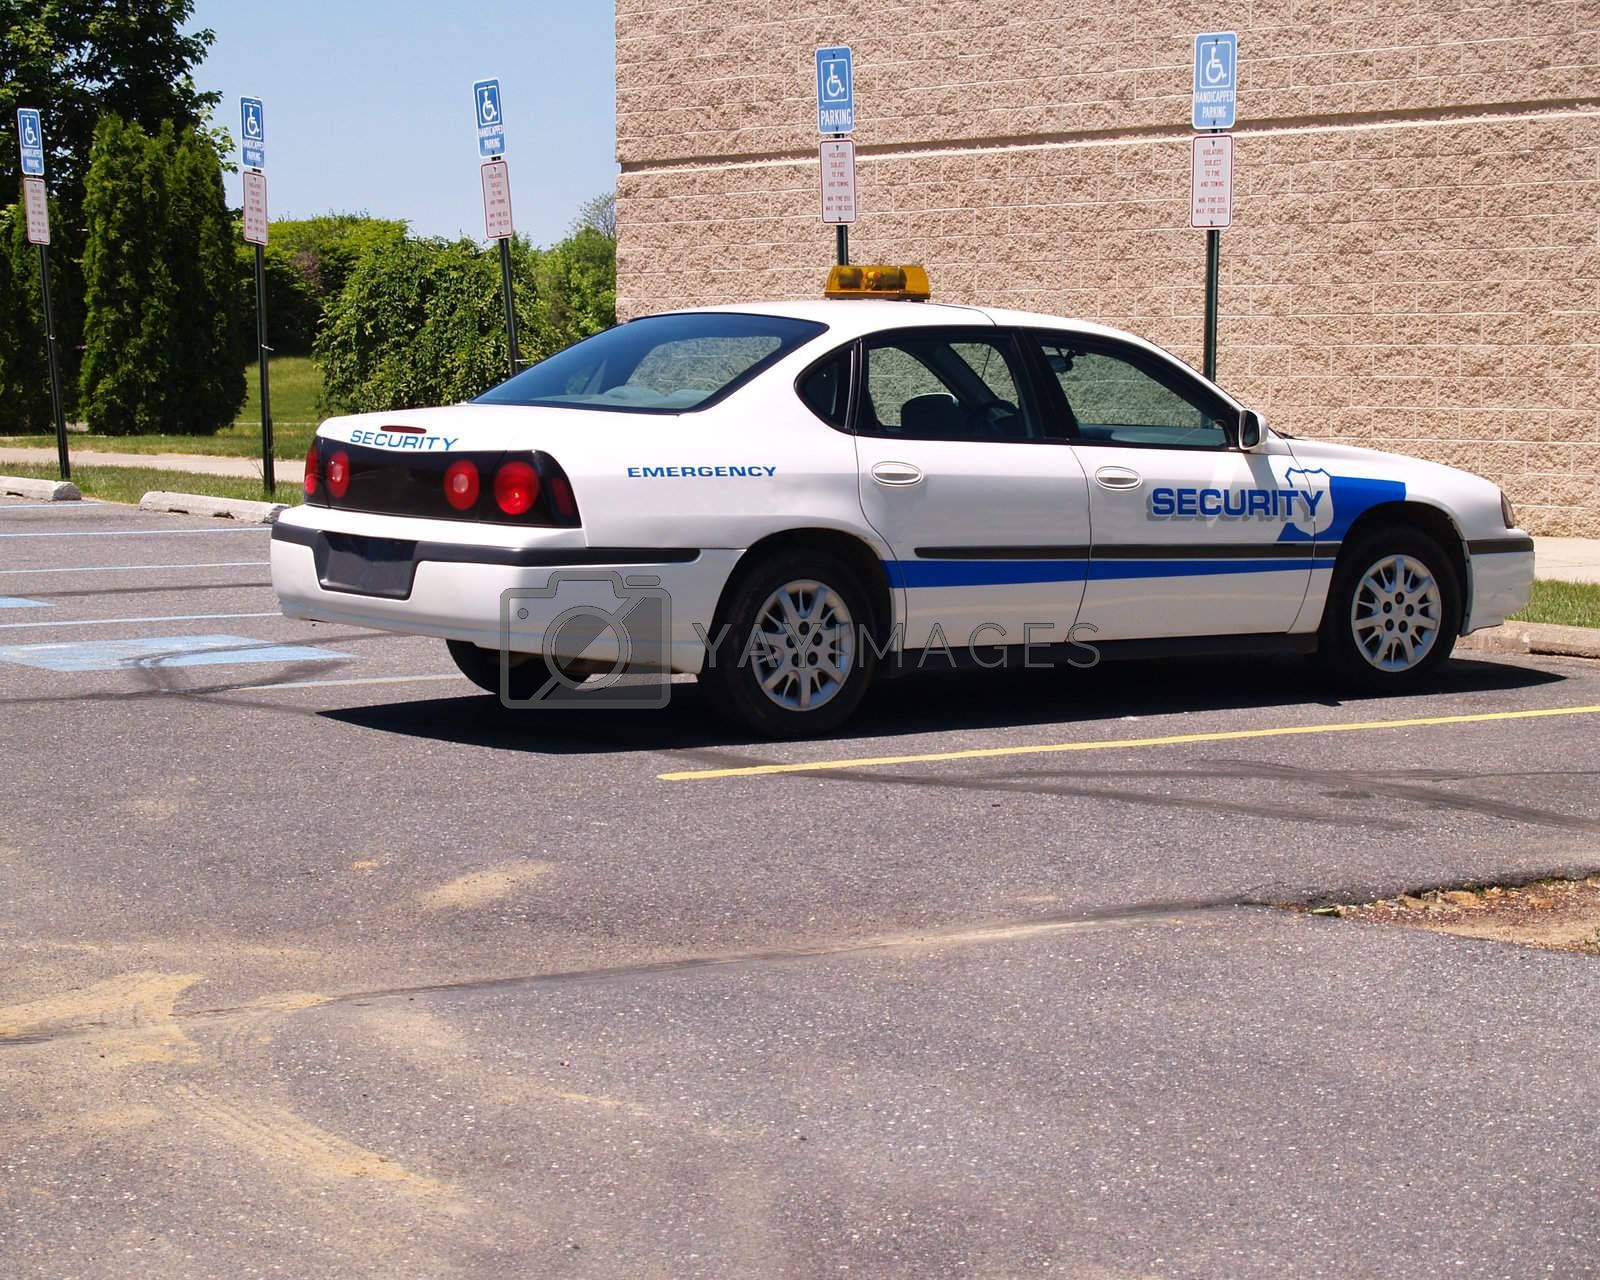 a campus security car sitting in a parking lot